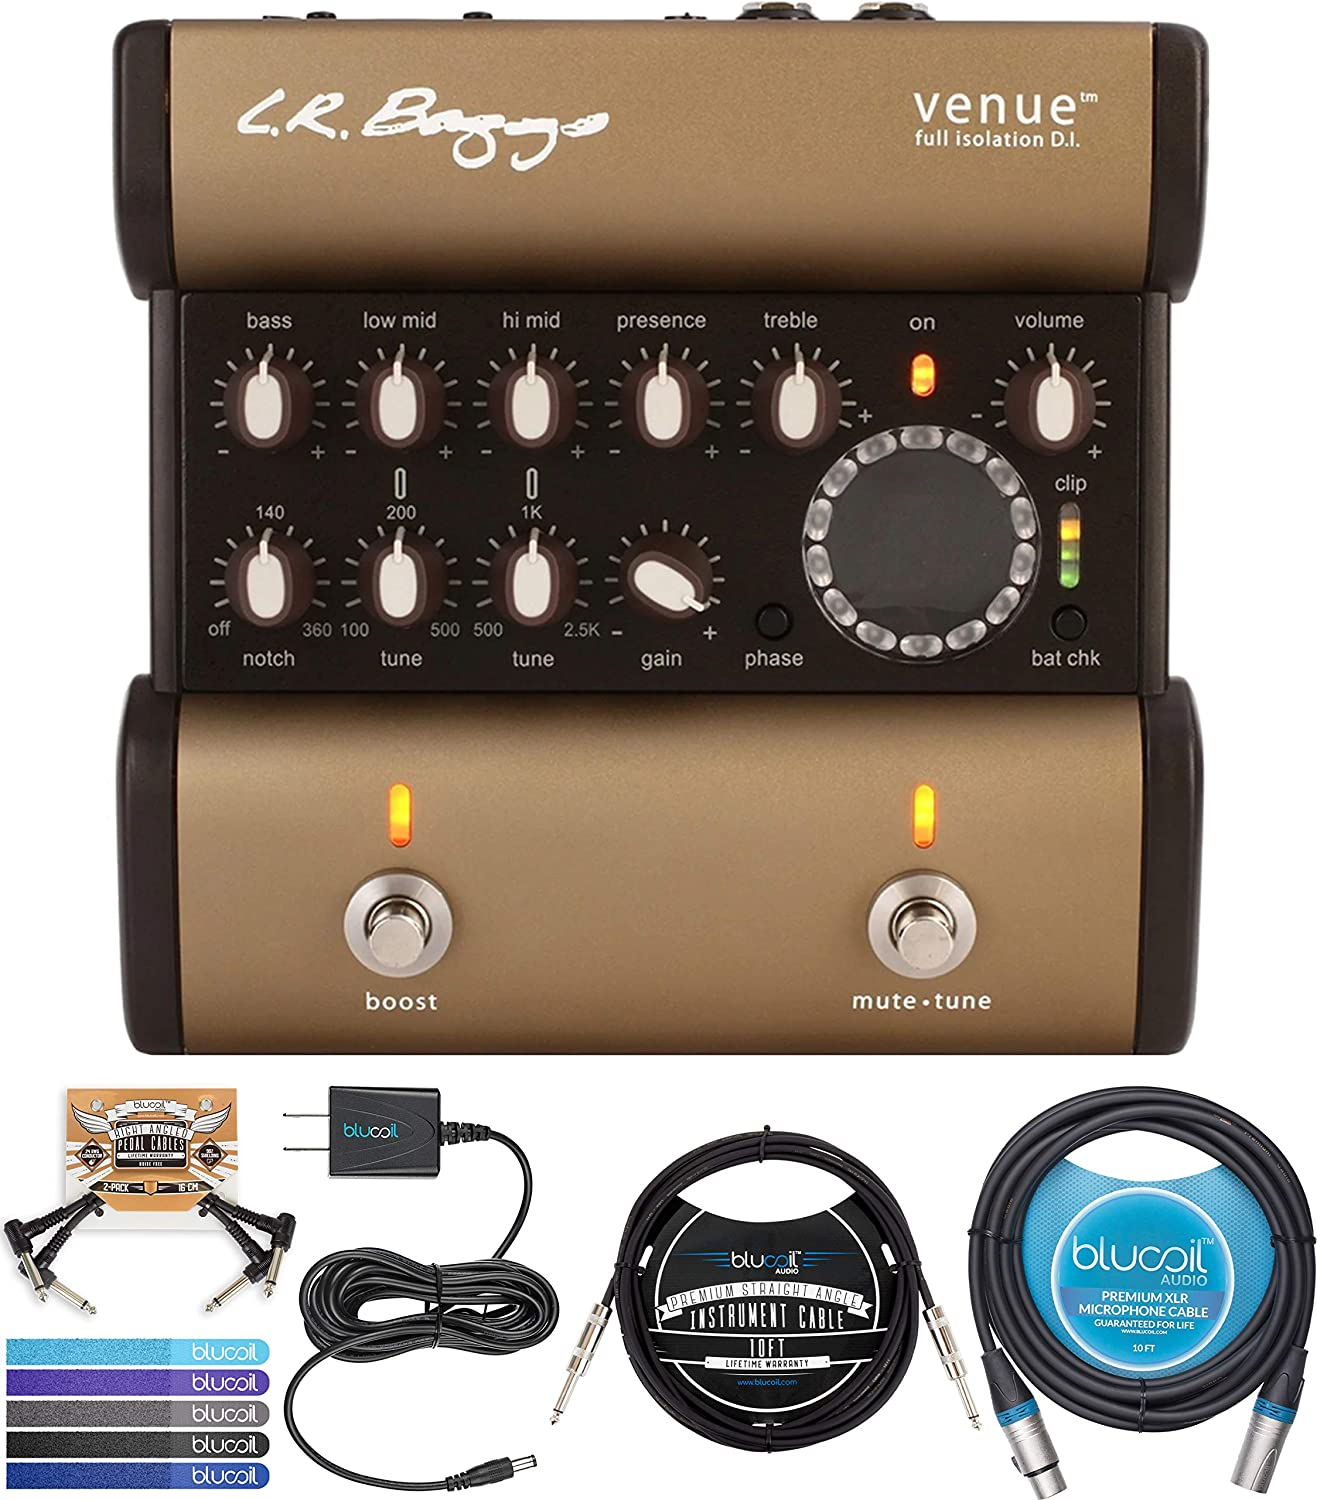 """LR Baggs Venue DI Acoustic Guitar Preamp Bundle with Blucoil Slim 9V Power Supply AC Adapter, 10' Straight Instrument Cable (1/4""""), 10-FT Balanced XLR Cable, 2x Patch Cables, and 5x Cable Ties"""